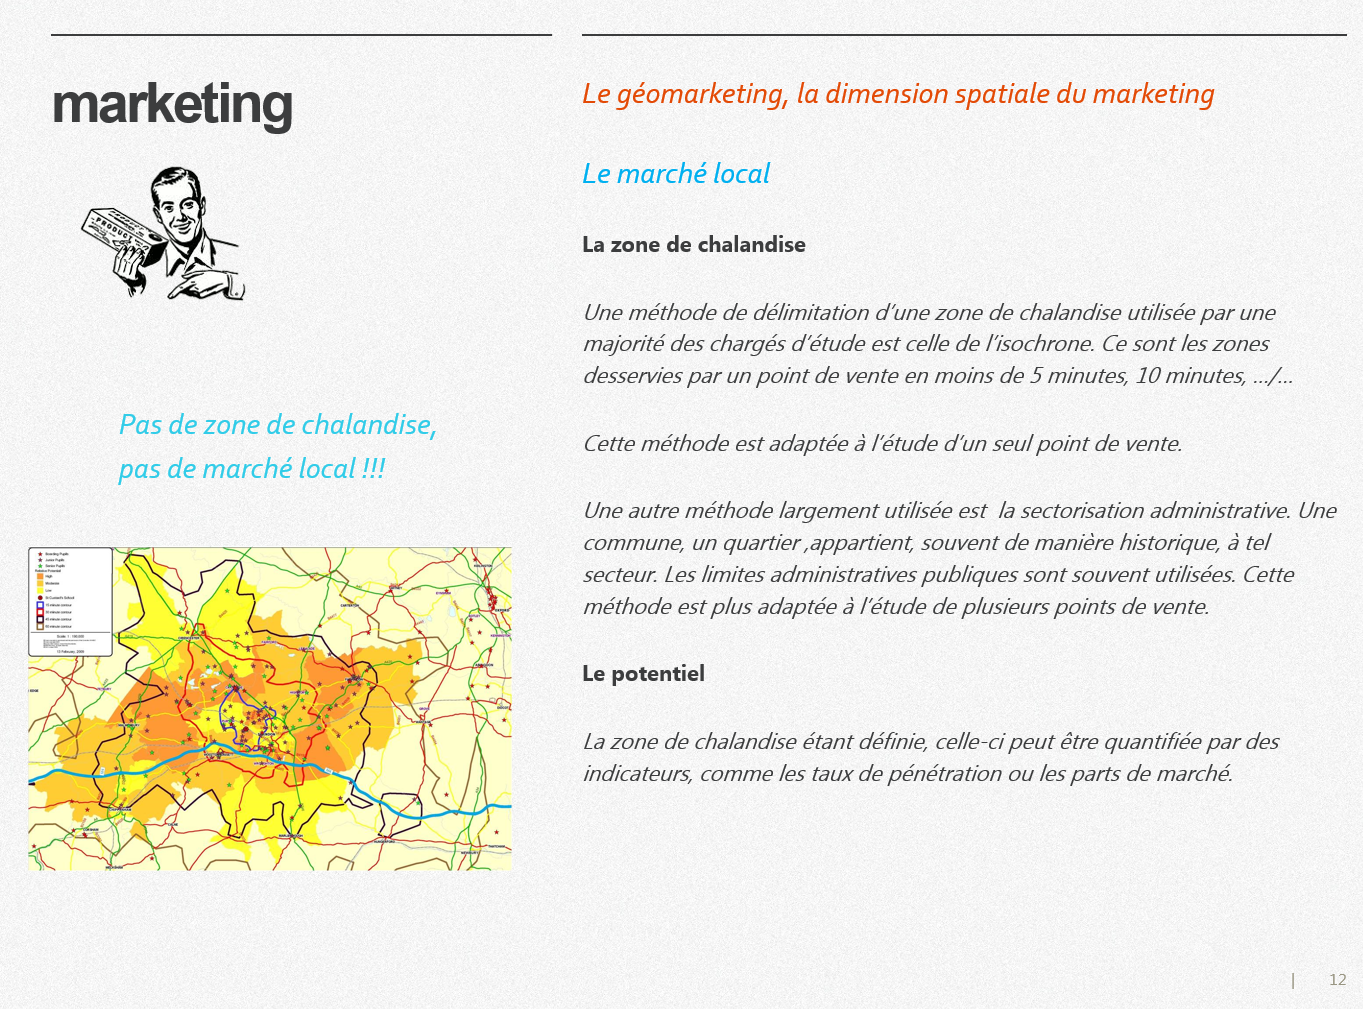 GMKT Slidedoc P12 Marketing 2